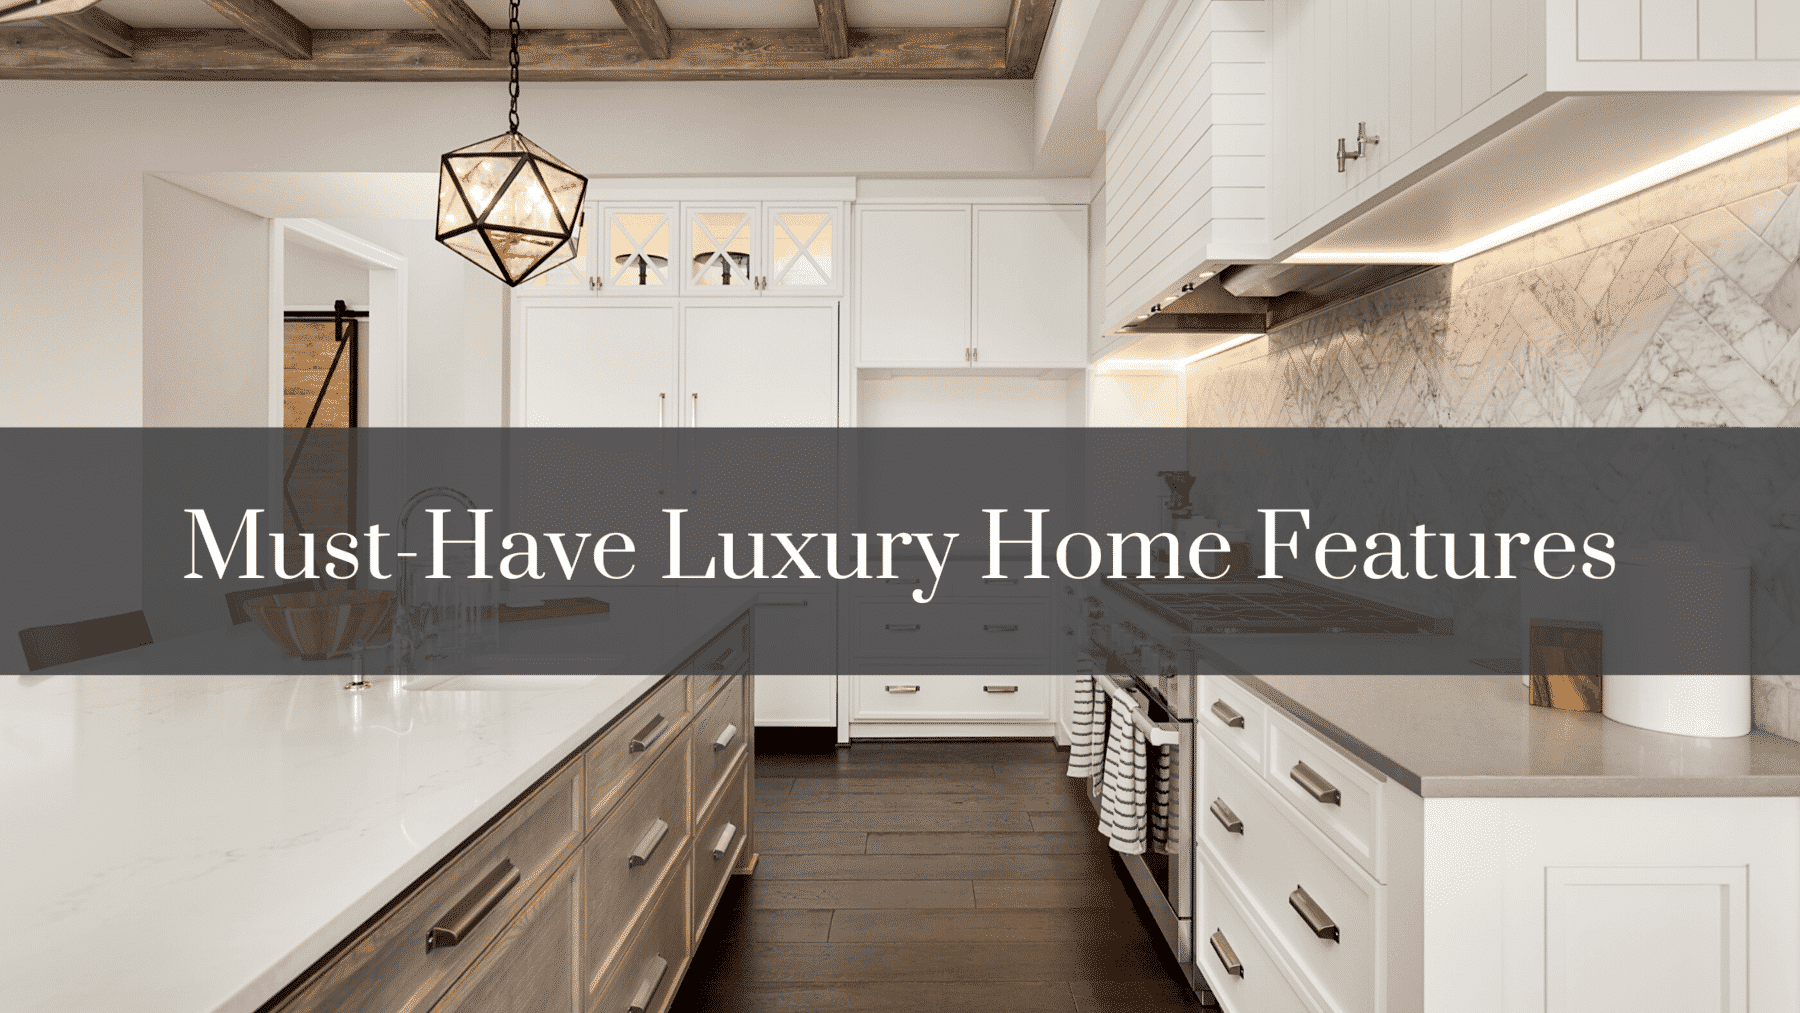 Must-Have Luxury Home Features (1)